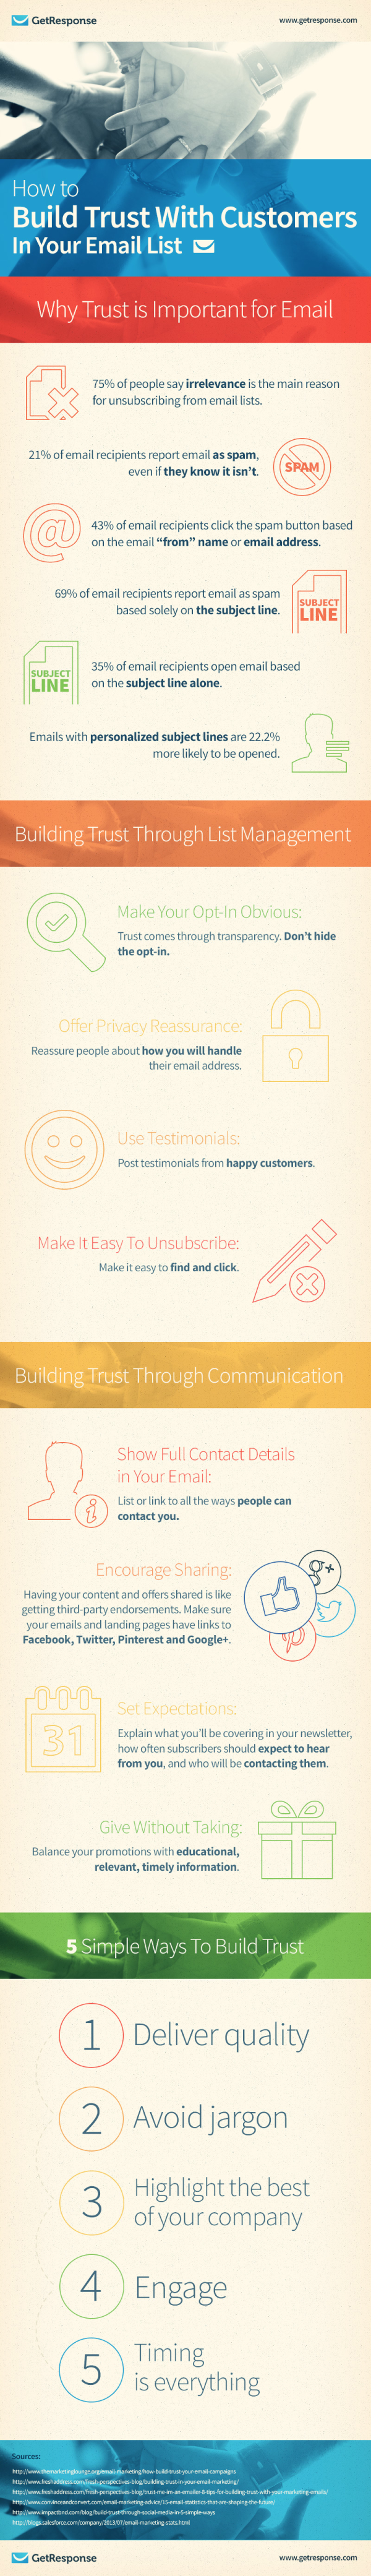 Infographic - How To Build Trust With Customers In Your Email List